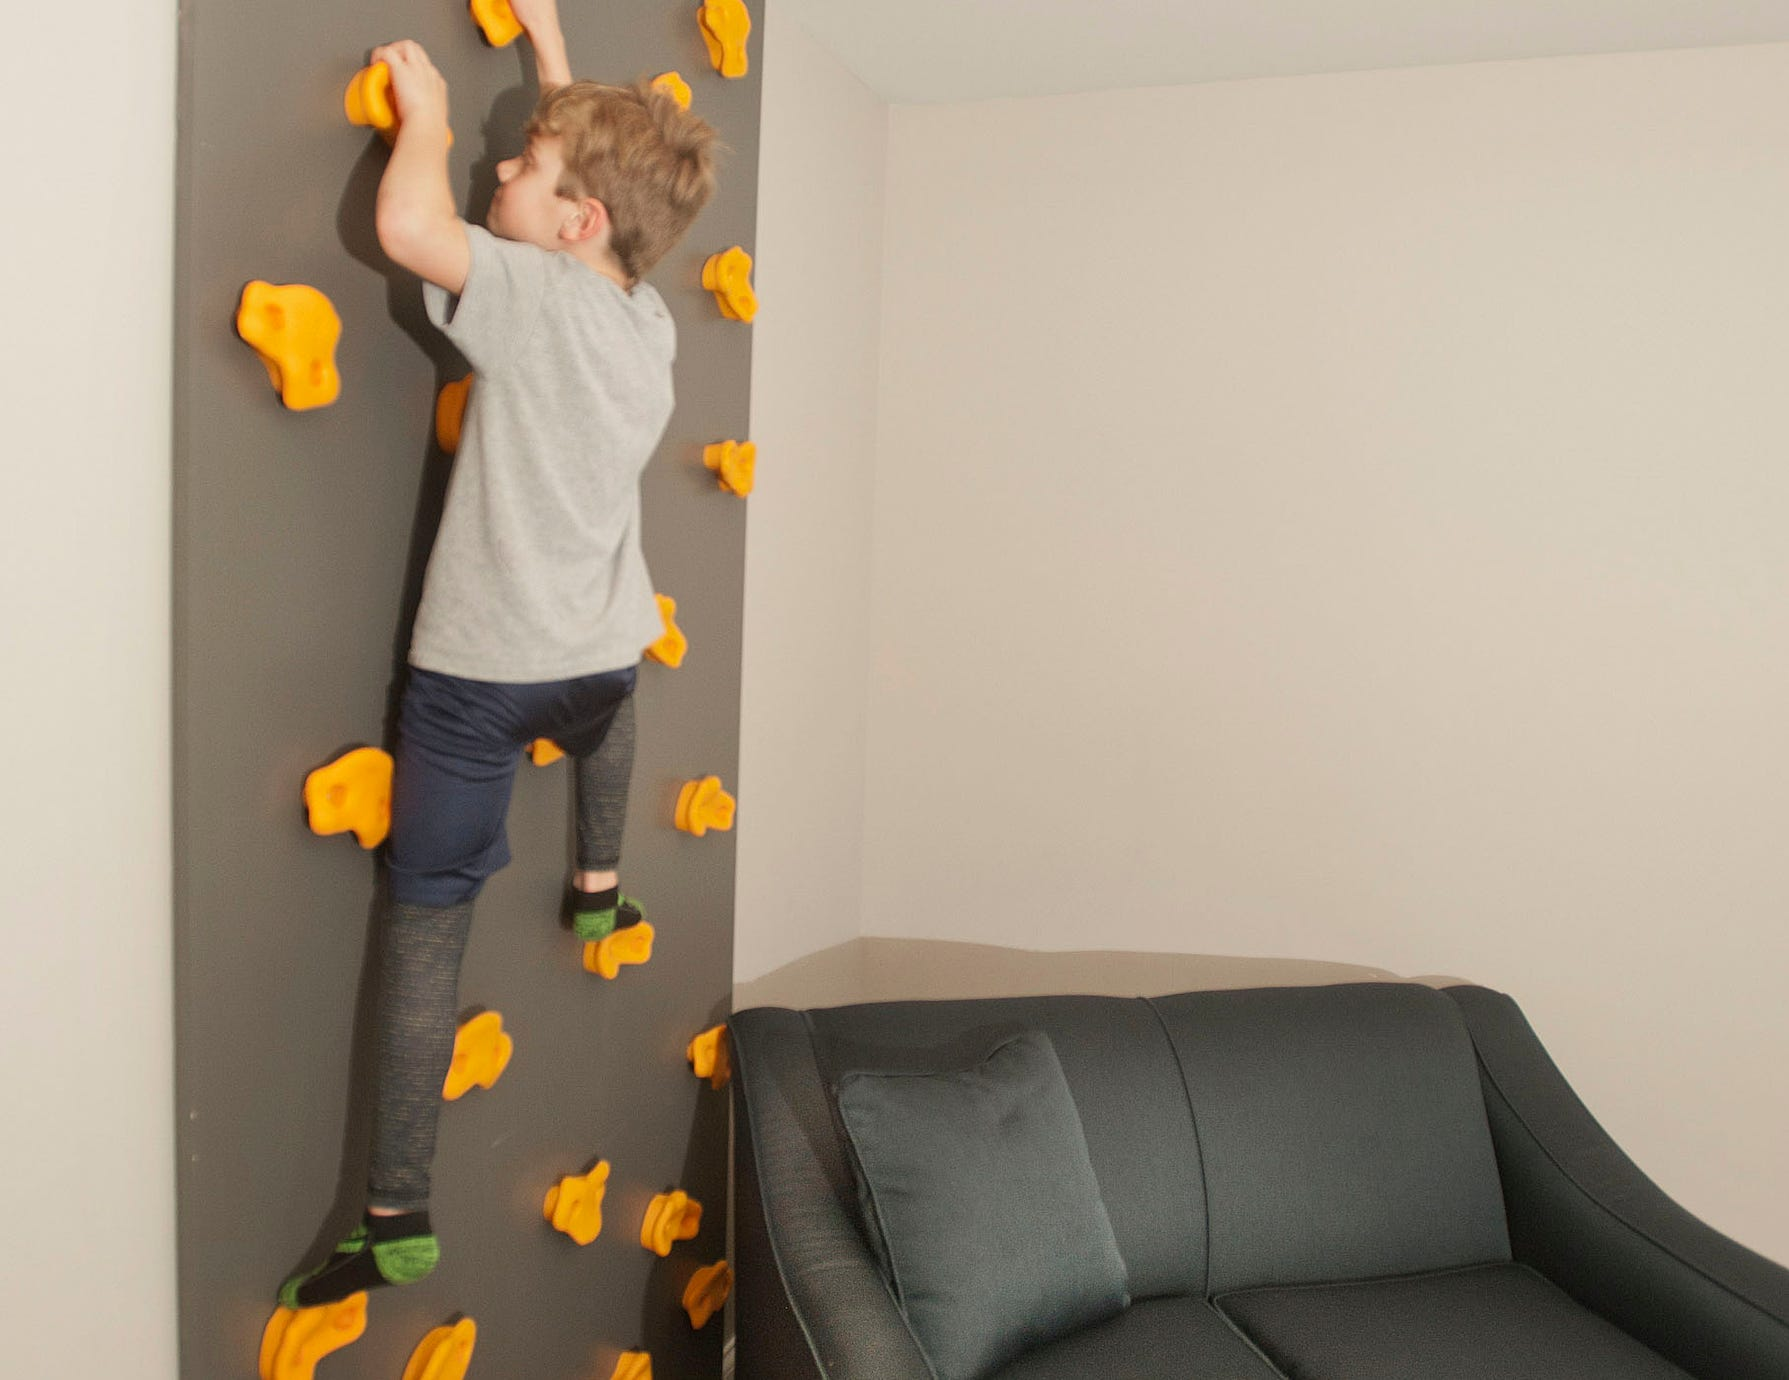 Ashur Hannah scales a climbing wall in the family's basement.01 March 2019